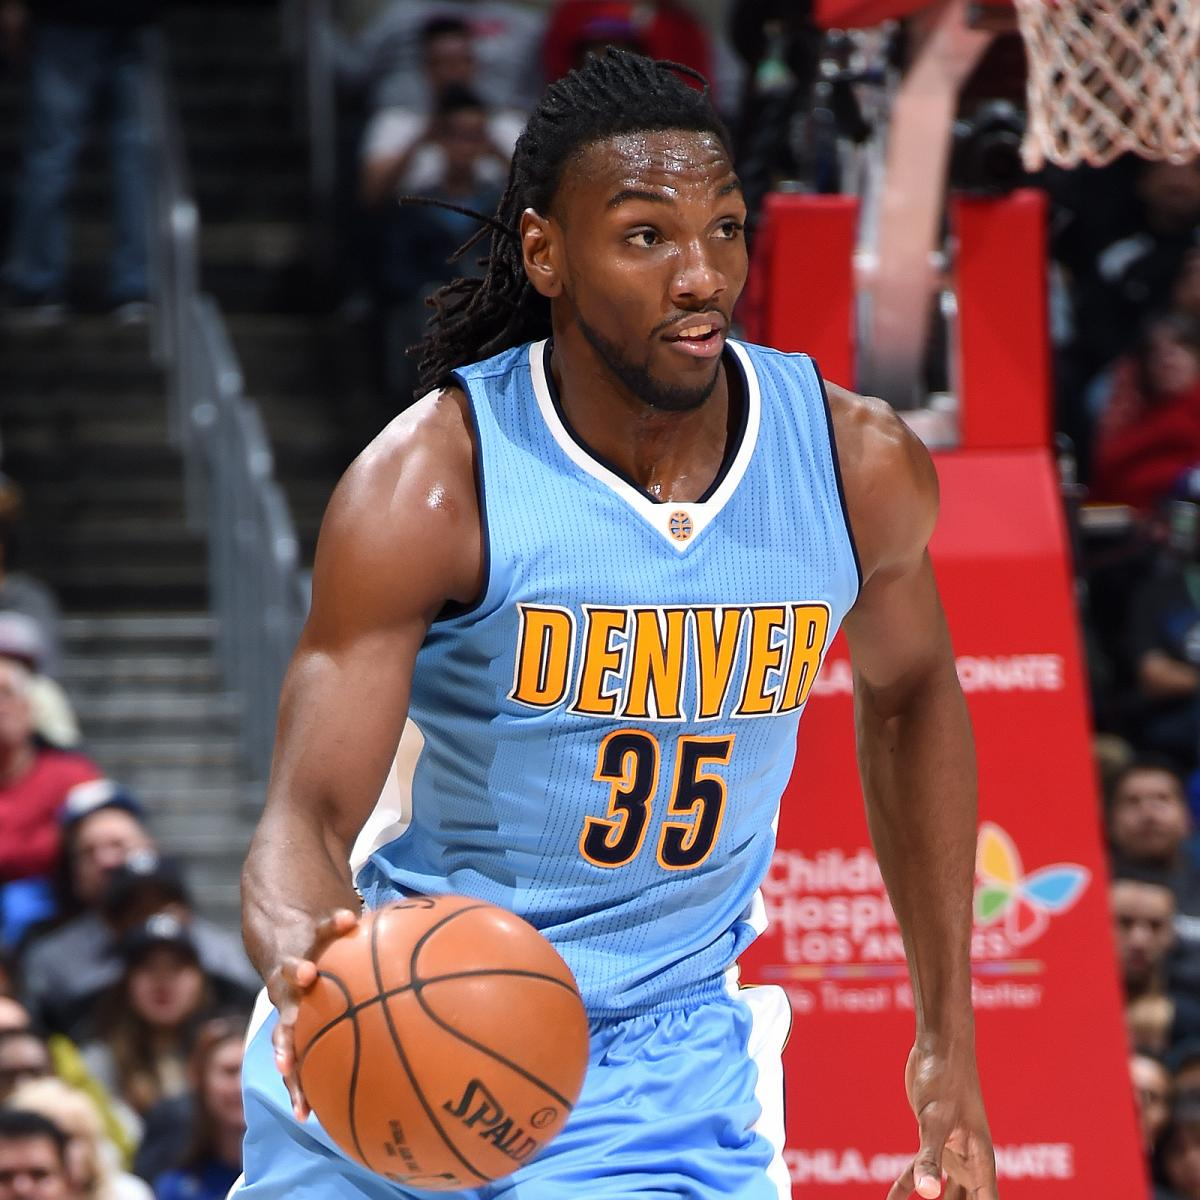 Denver Nuggets Espn: Kenneth Faried Out Vs. Grizzlies With Back Injury